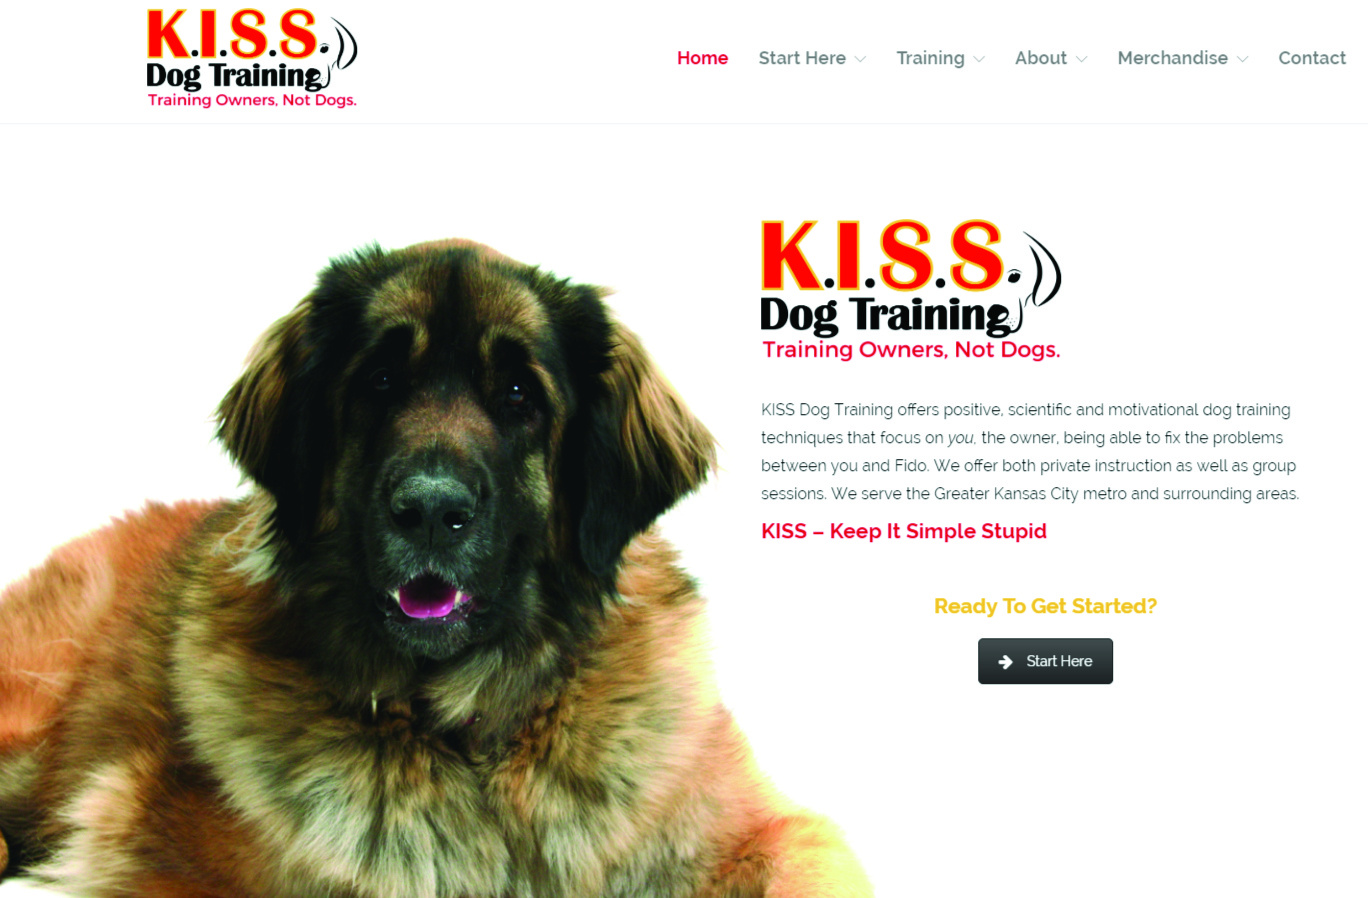 KISS Dog Training Web